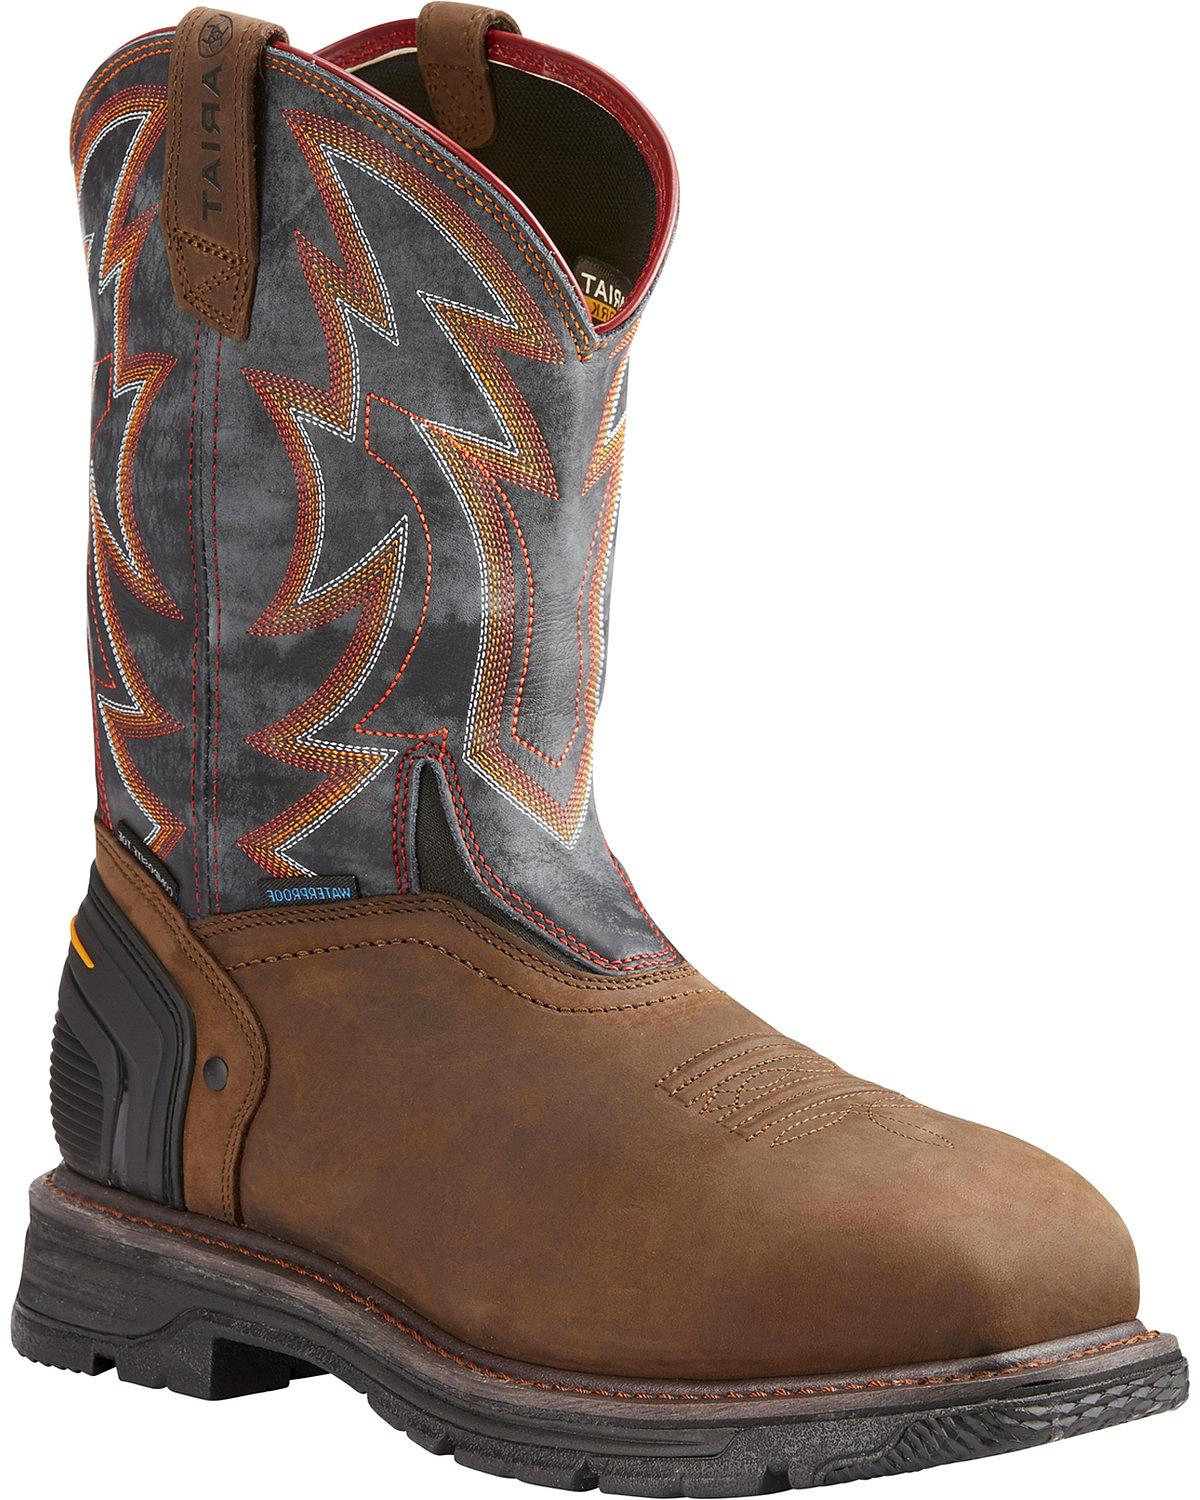 d2fa82f1932 Details about Ariat Men's Catalyst VX Thunder Work Boot - Composite Toe -  10023062